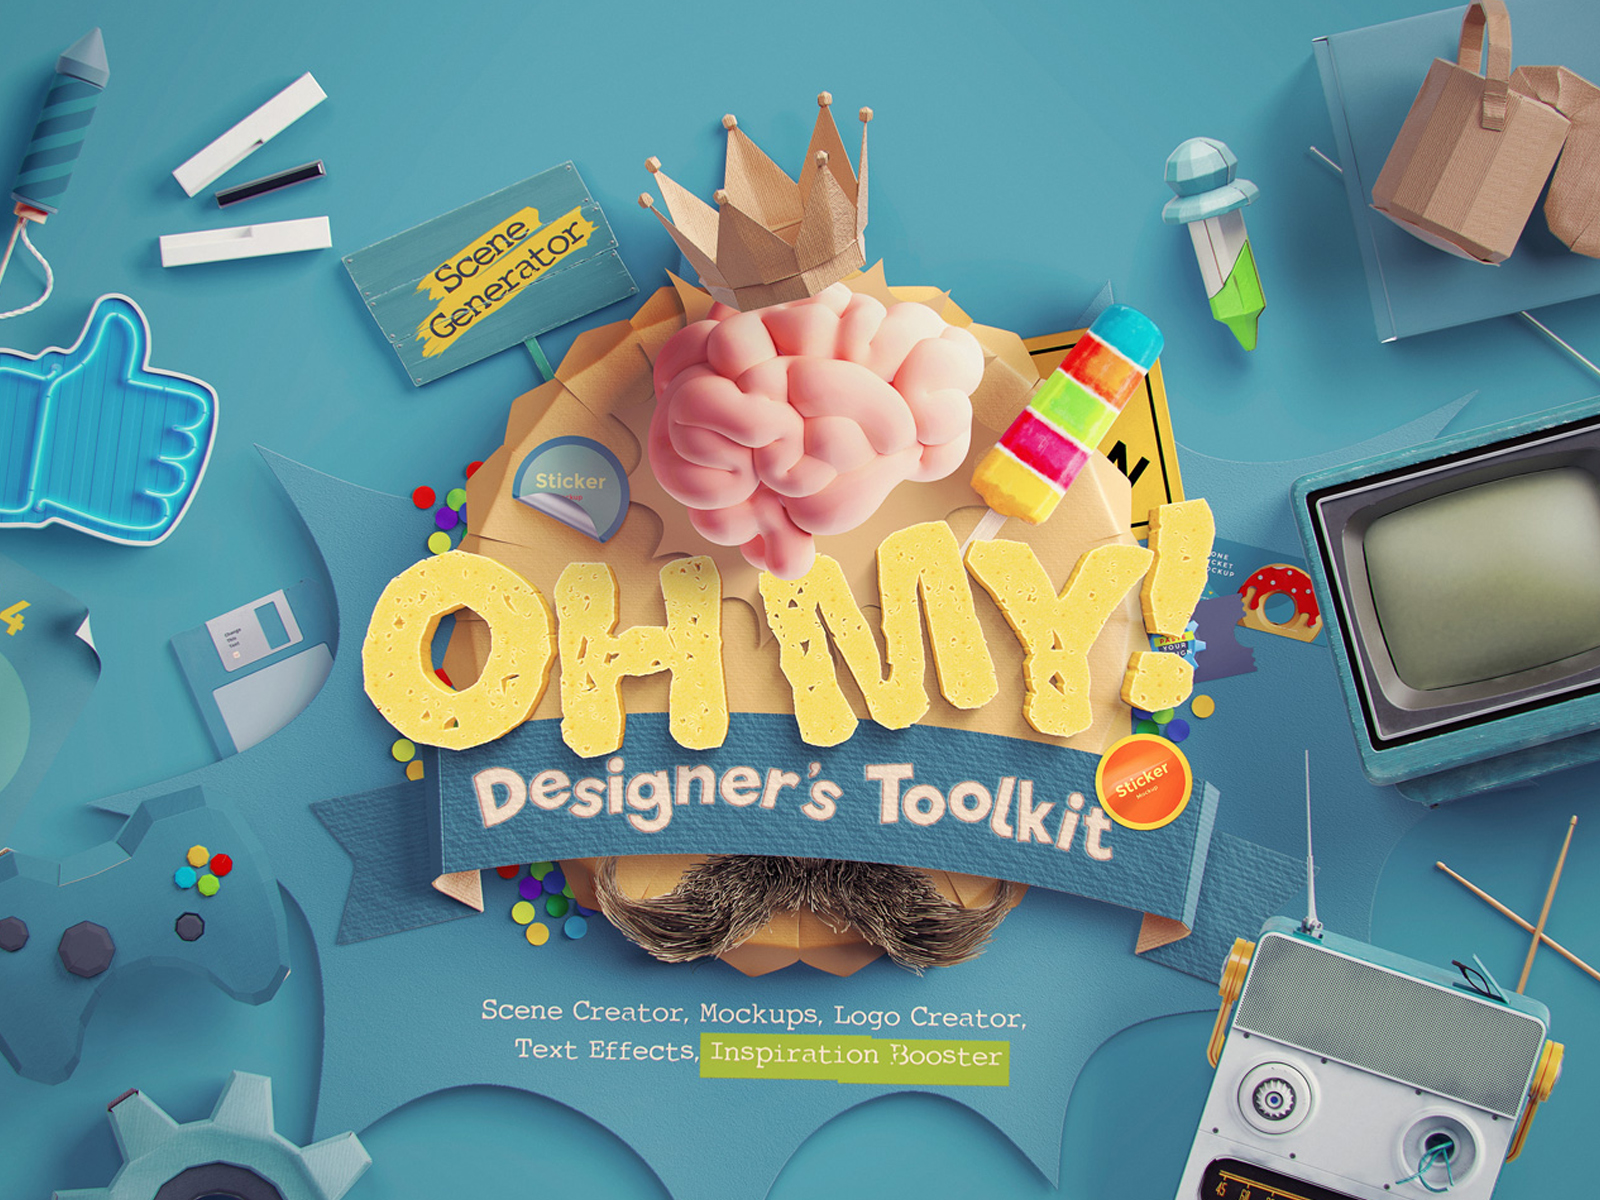 Scene Creator, Mockups, Logo Creator, Text Effects, Inspiration Booster